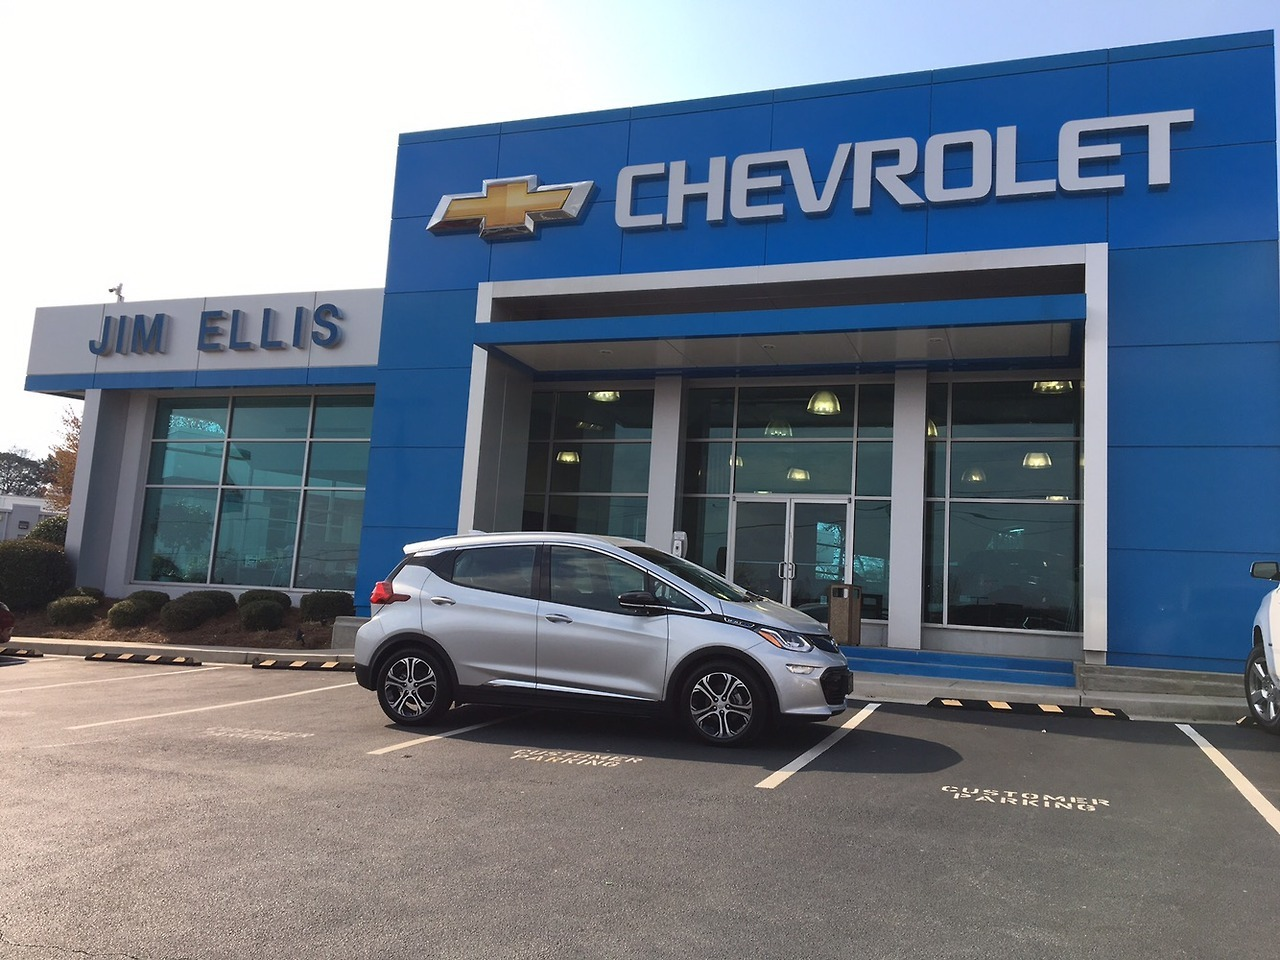 Bolt 'Car of the Year' at Jim Ellis Chevrolet inGeorgia     Atlanta (March 23, 2017) Jim Ellis Chevrolet Brings Bolt Experience to Georgia Drivers First! Jim Ellis Chevrolet announced that the dealership has acquired its first 2017 Chevrolet Bolt.